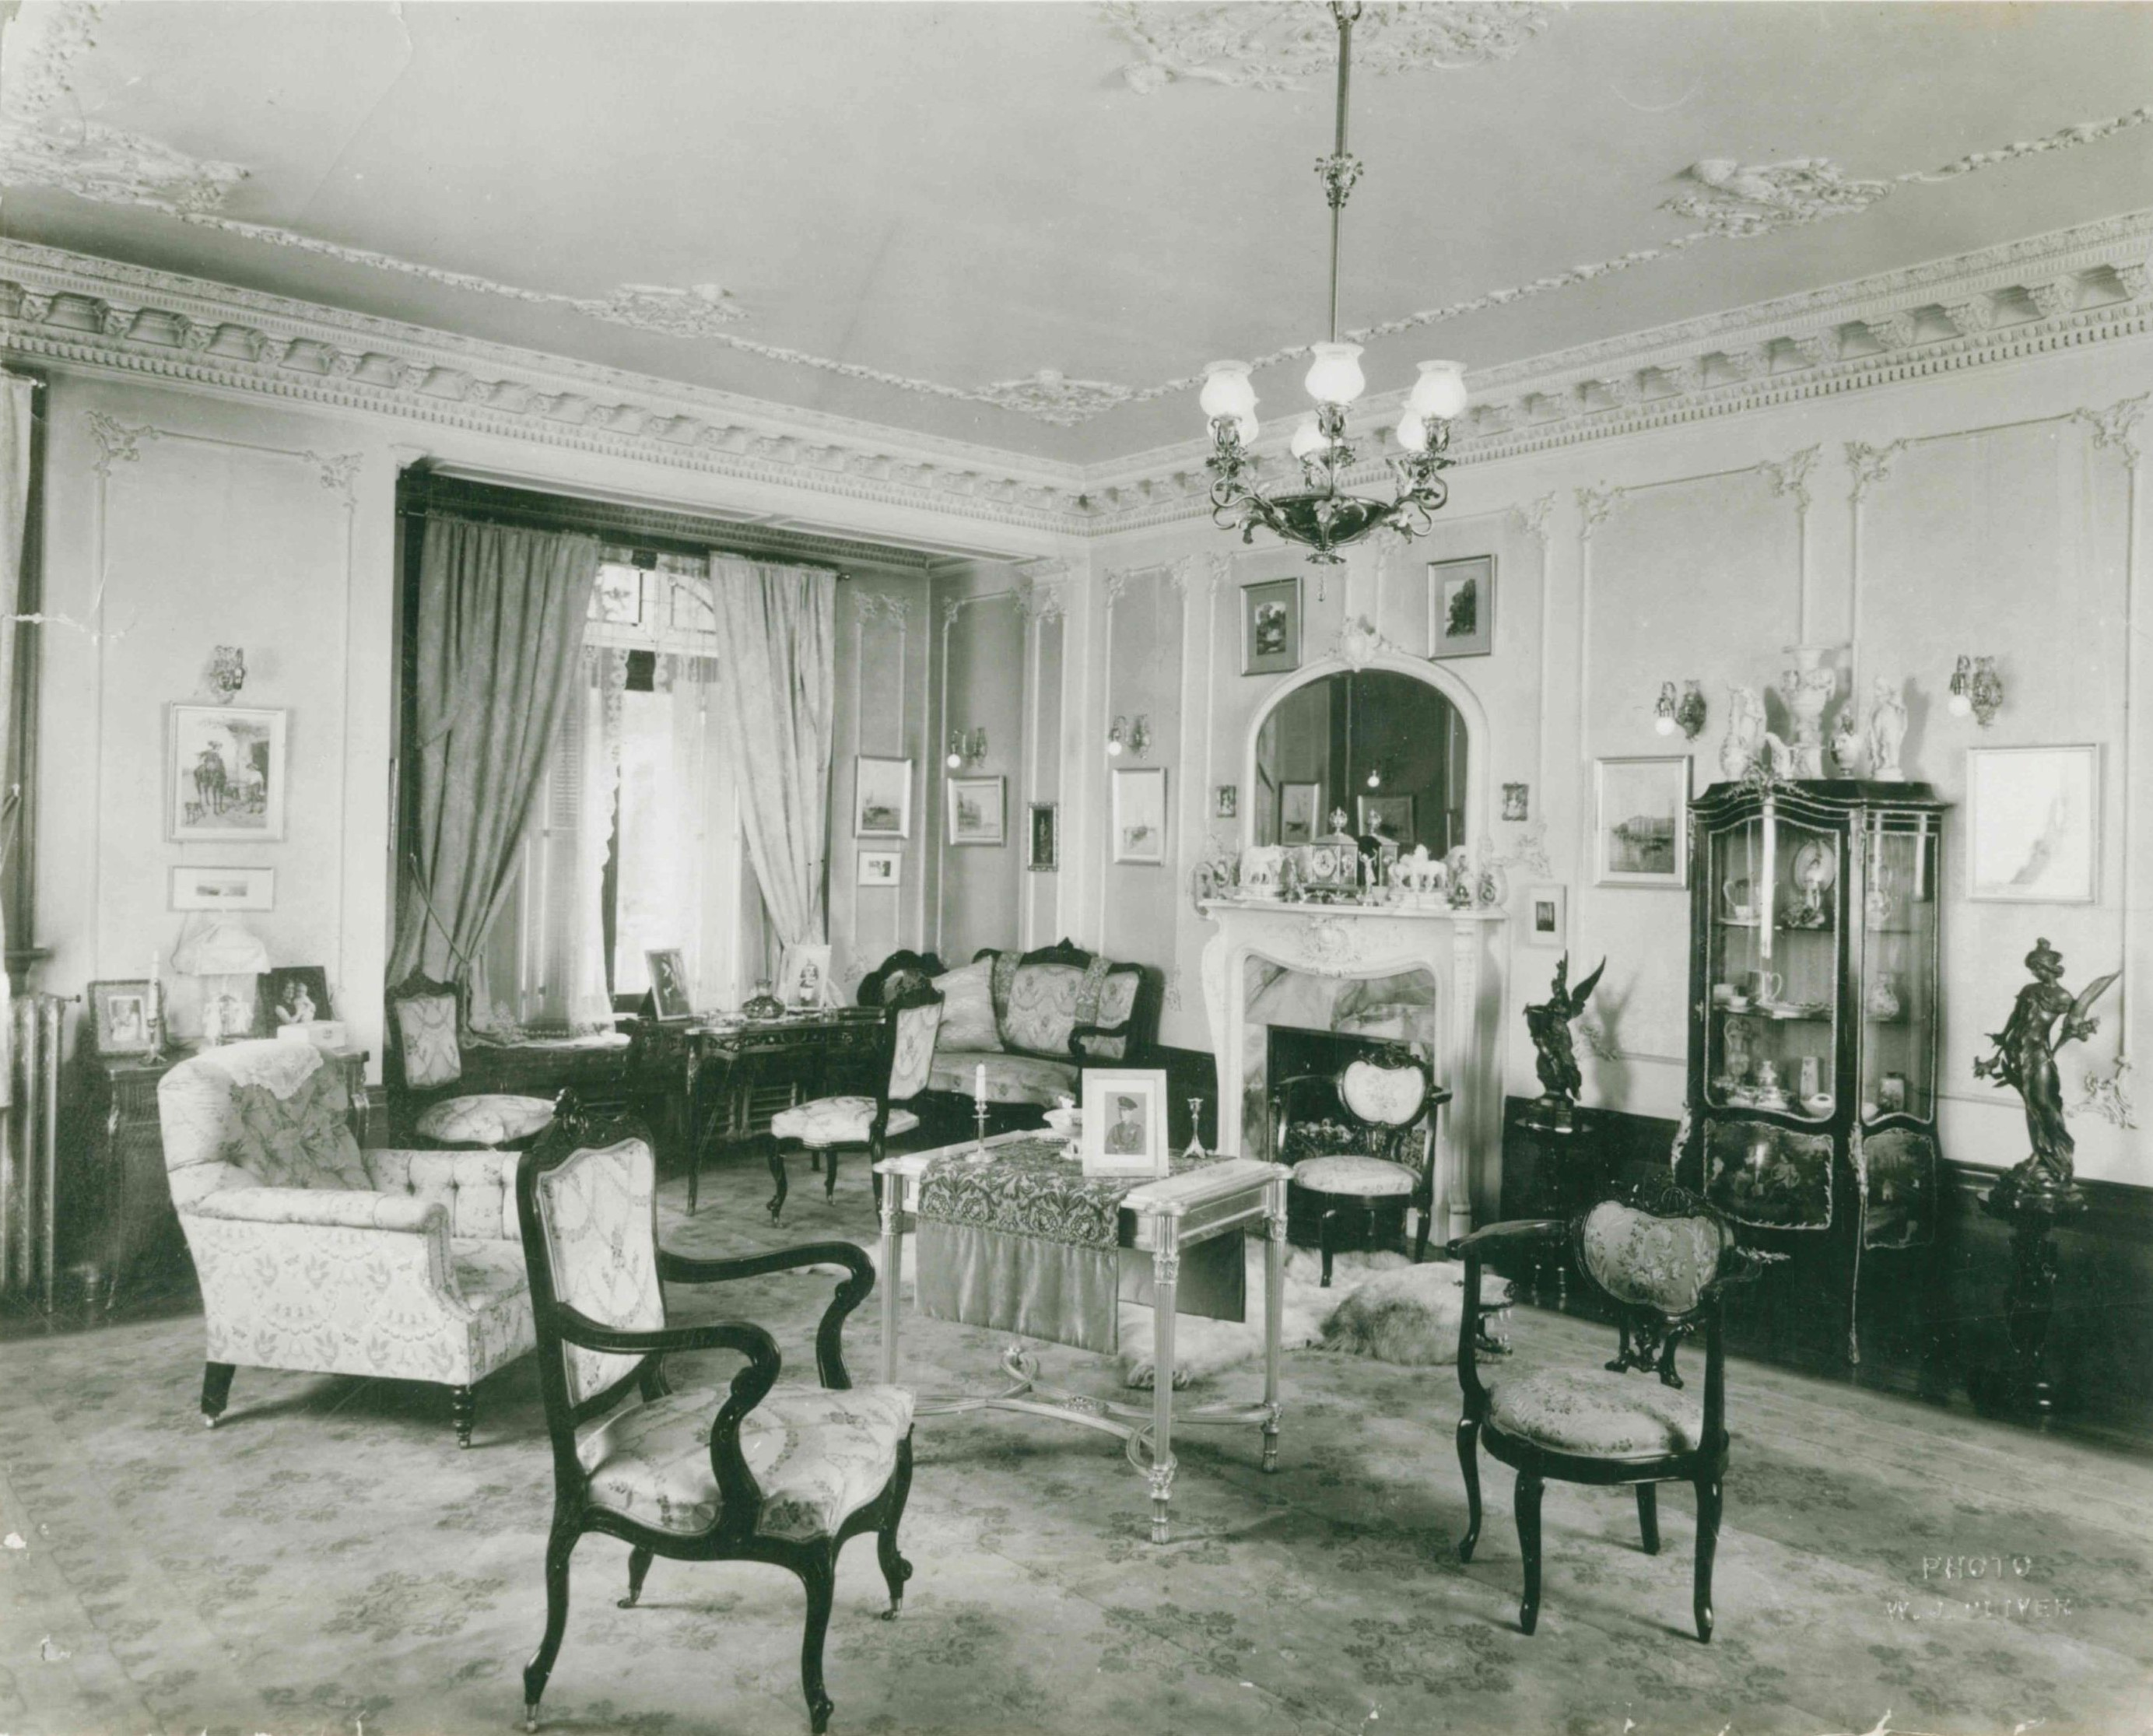 Drawing Room at Lougheed House, c. 1920s